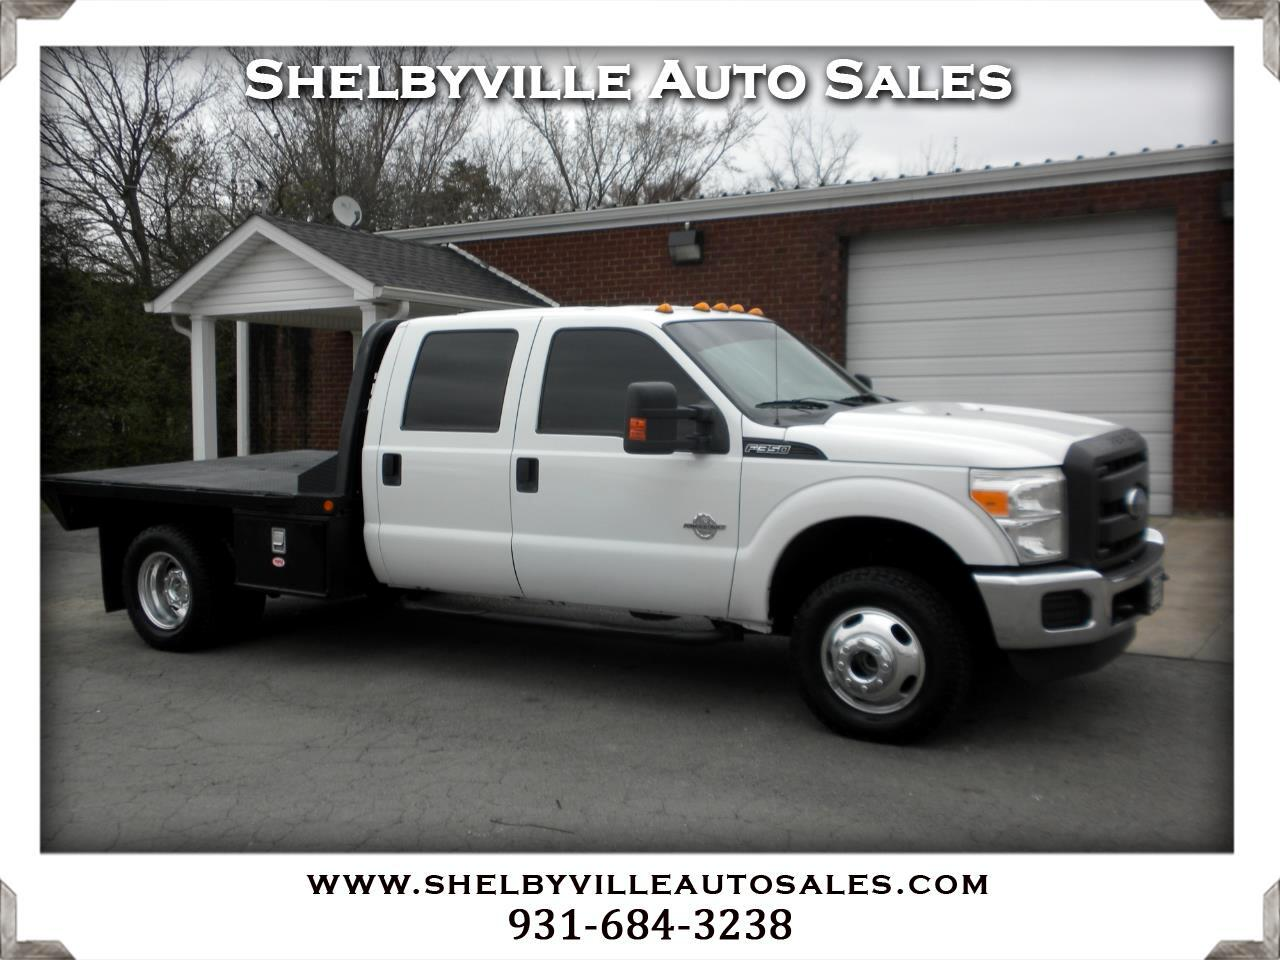 2012 Ford Super Duty F-350 DRW 4X4 Crew Cab XL